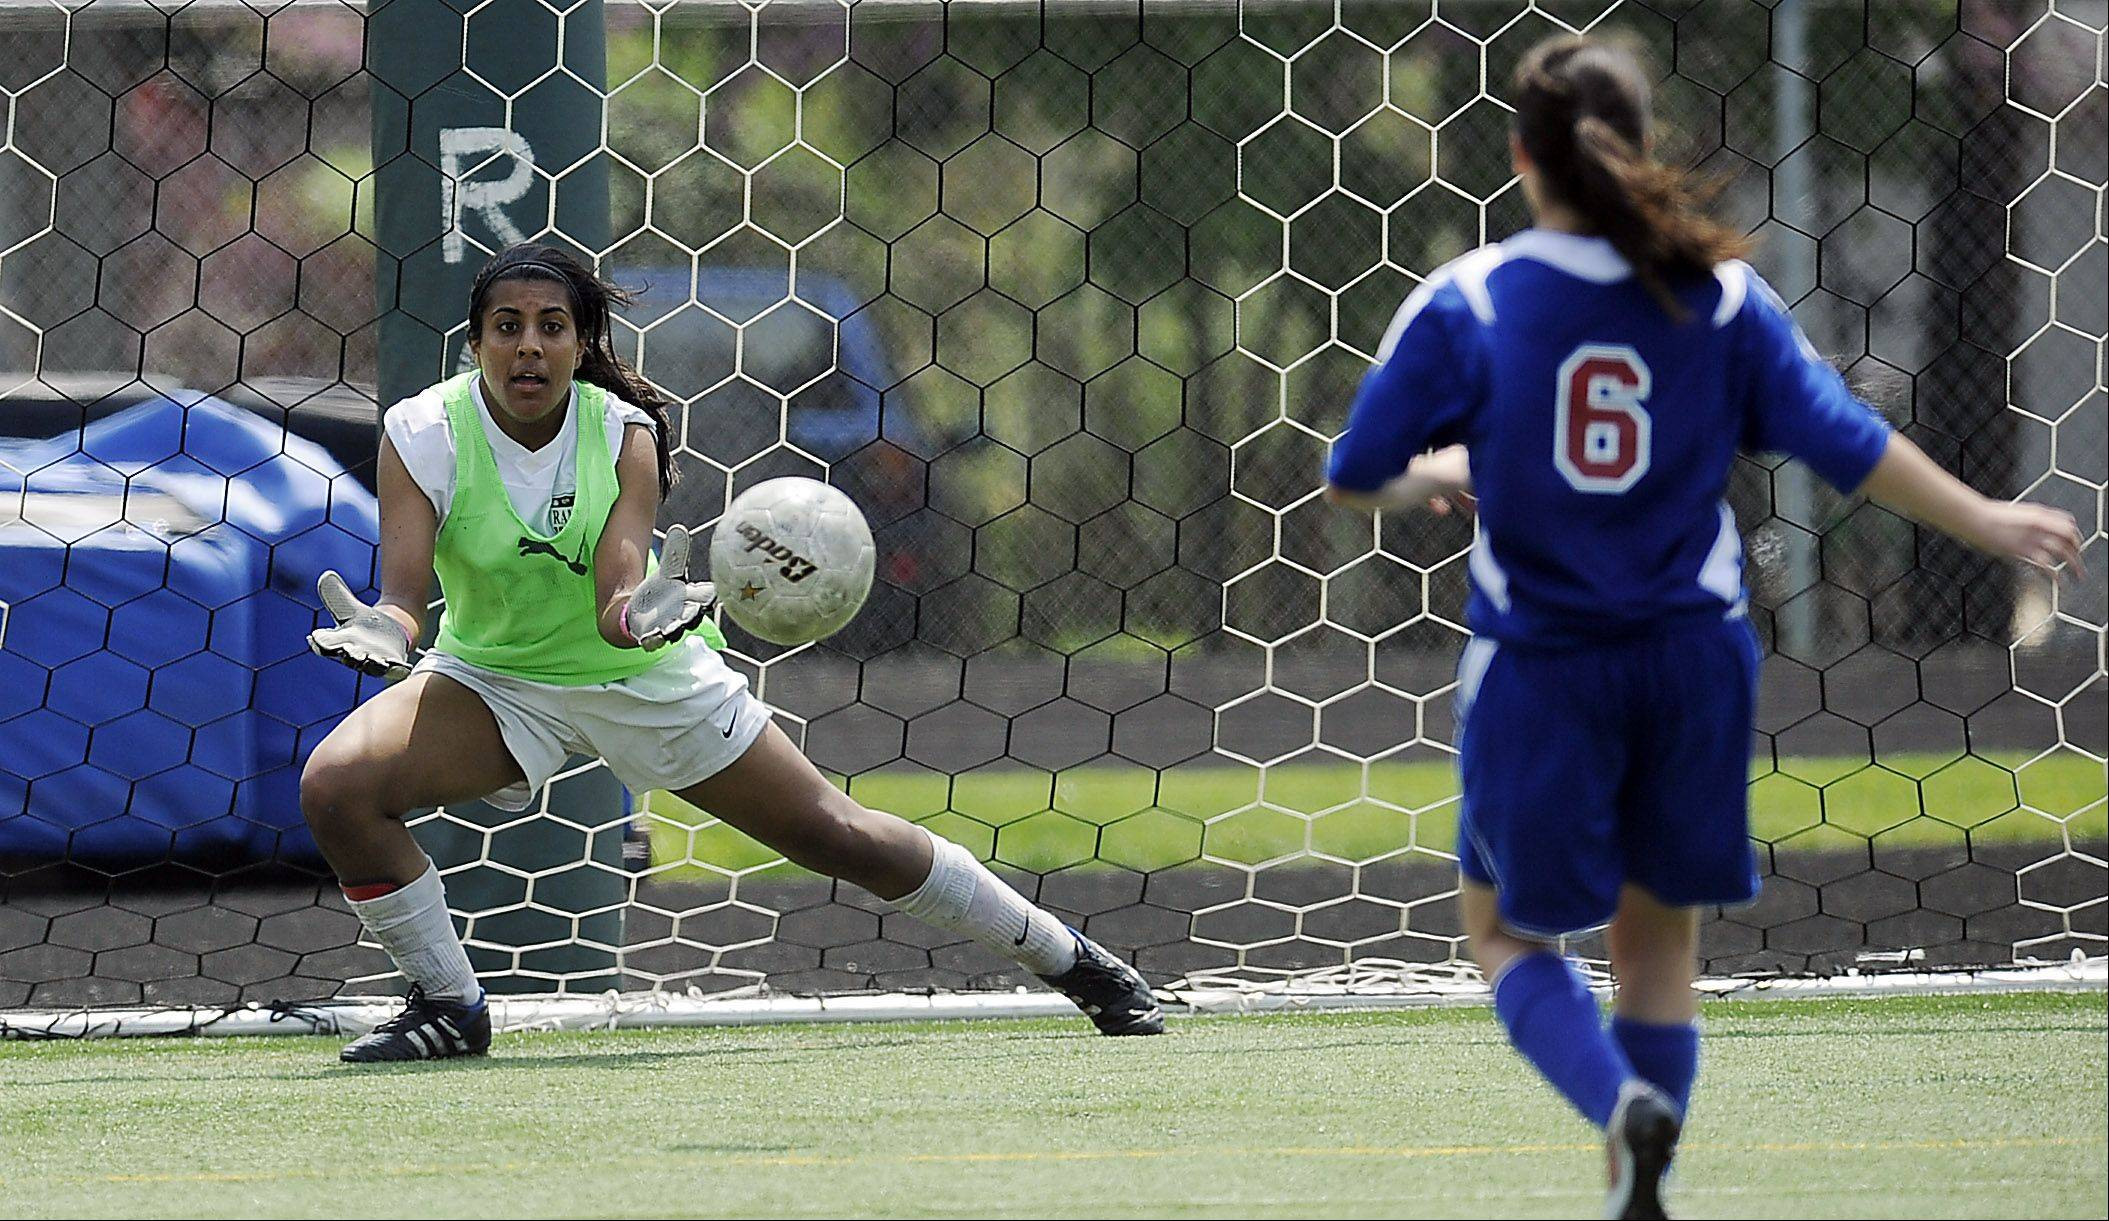 Grayslake Central goalie Kajal Chokshi prepares to block a shot by Lakes' Jessica Cipolla in a shootout victory in the Class 2A regional championship play Saturday.